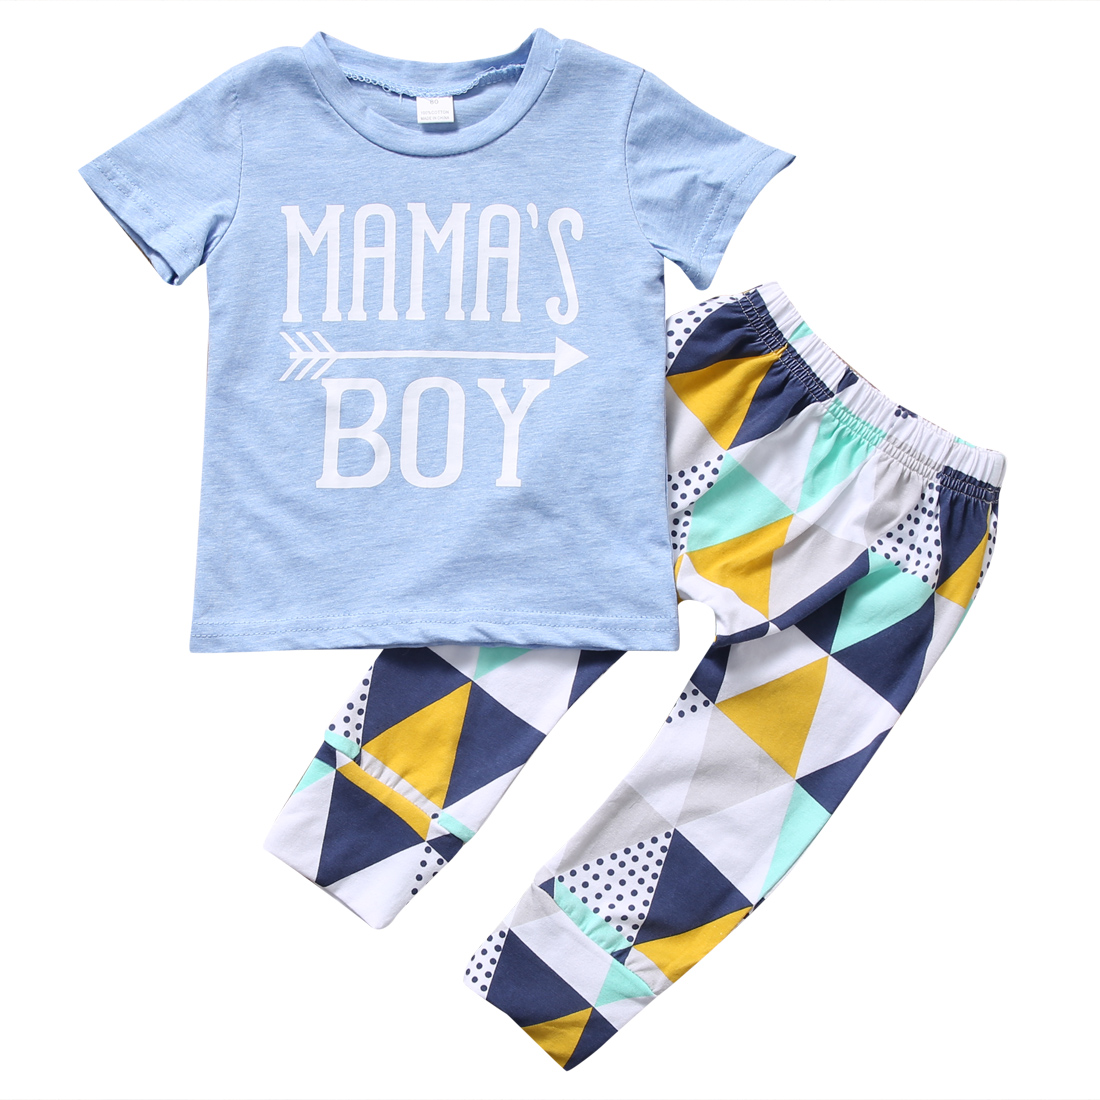 2PCS Newborn Baby Boys Outfits T-shirt Tops+ Pants Sets Clothes Summer Short Sleeve Mama Boy Print Tees Casual Clothes summer children tracksuit 2018 cool kid boys clothes set short sleeve floral t shirt short pants 2pcs baby boy beach clothes set